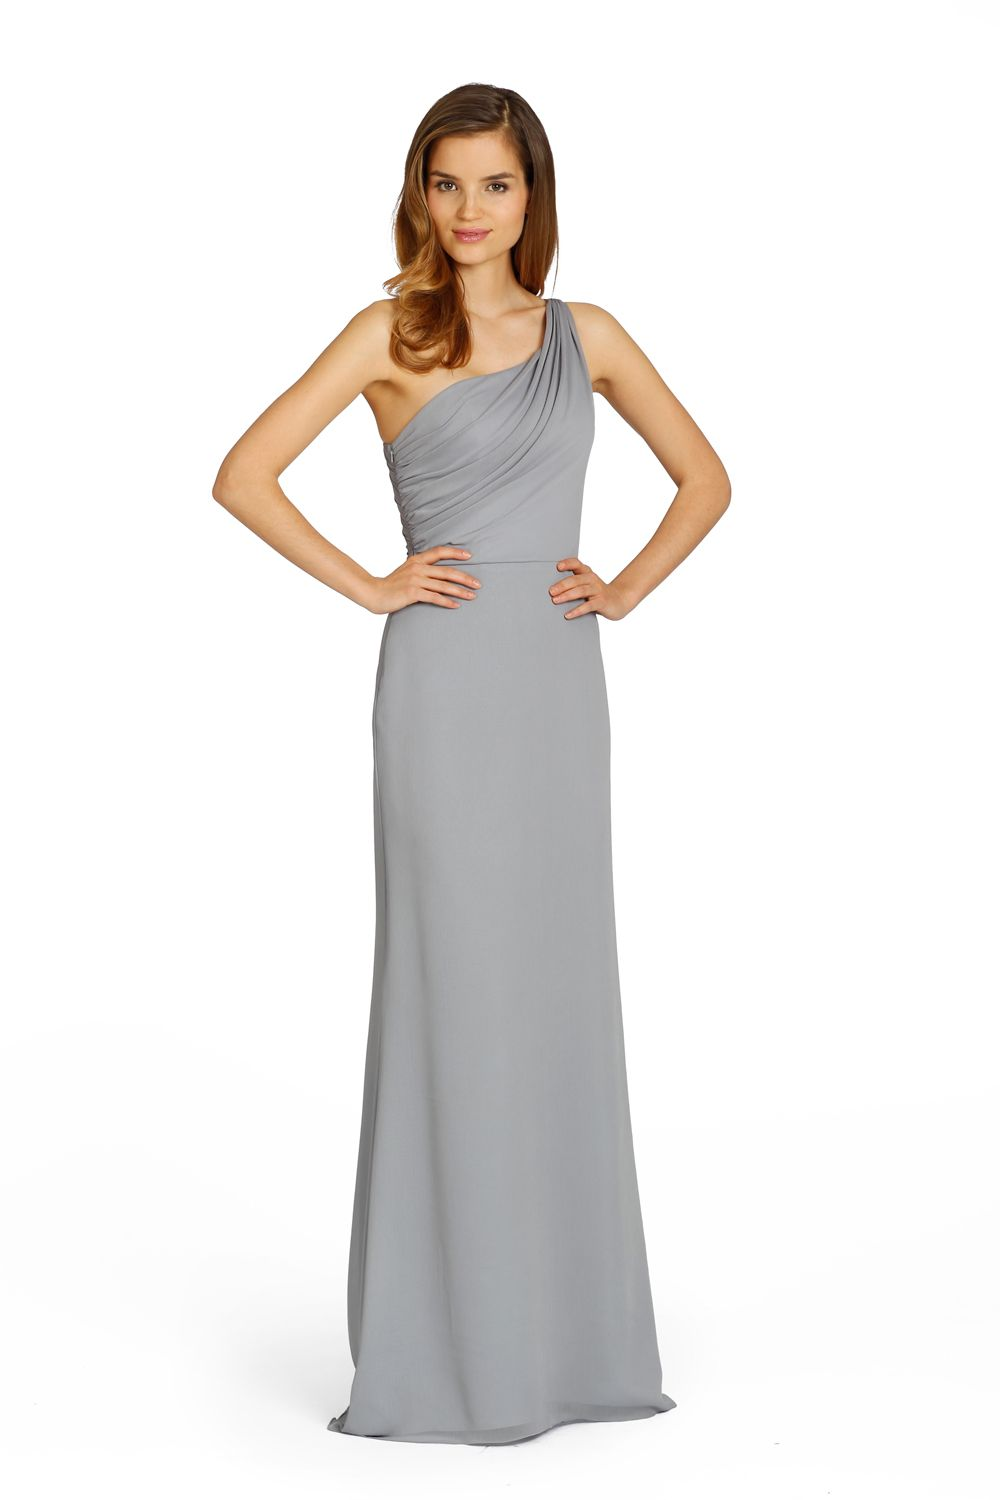 Our favourite one shoulder bridesmaid dresses jim hjelm grey one shoulder bridesmaid dress from jim hjelm occasions ombrellifo Image collections